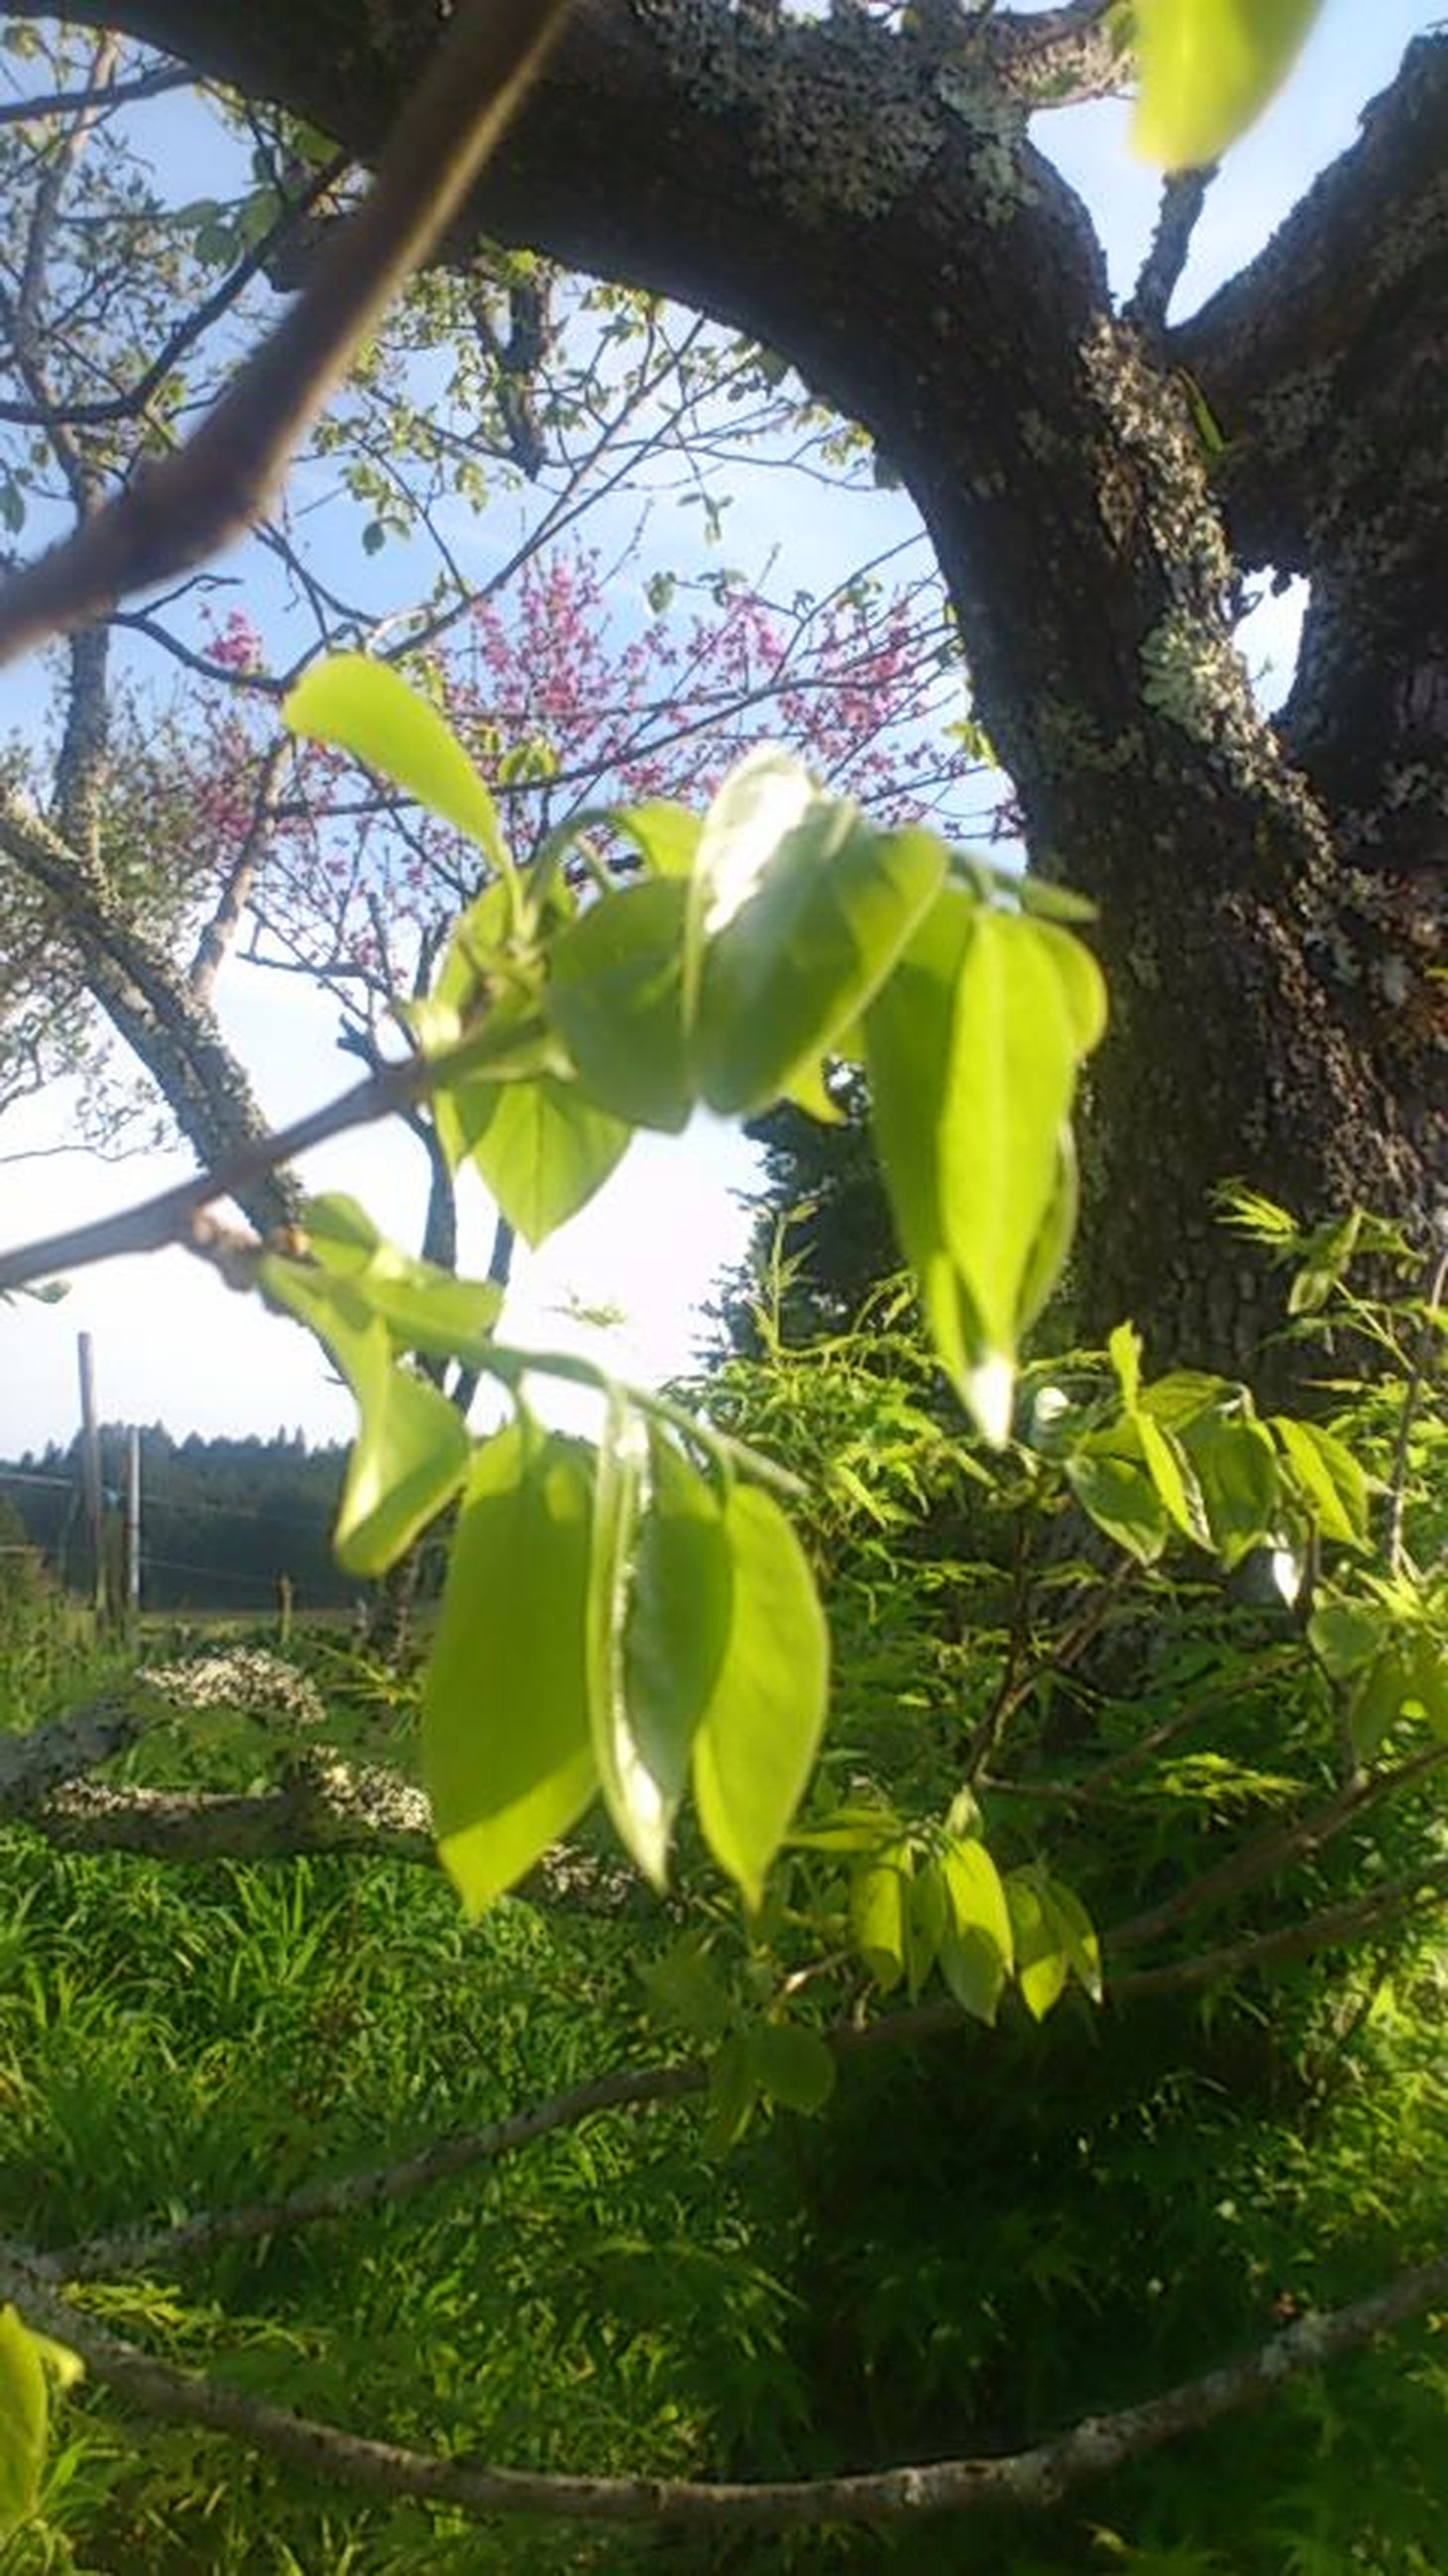 growth, tree, green color, leaf, branch, freshness, nature, plant, beauty in nature, fruit, growing, close-up, low angle view, sunlight, flower, day, tree trunk, green, sky, yellow